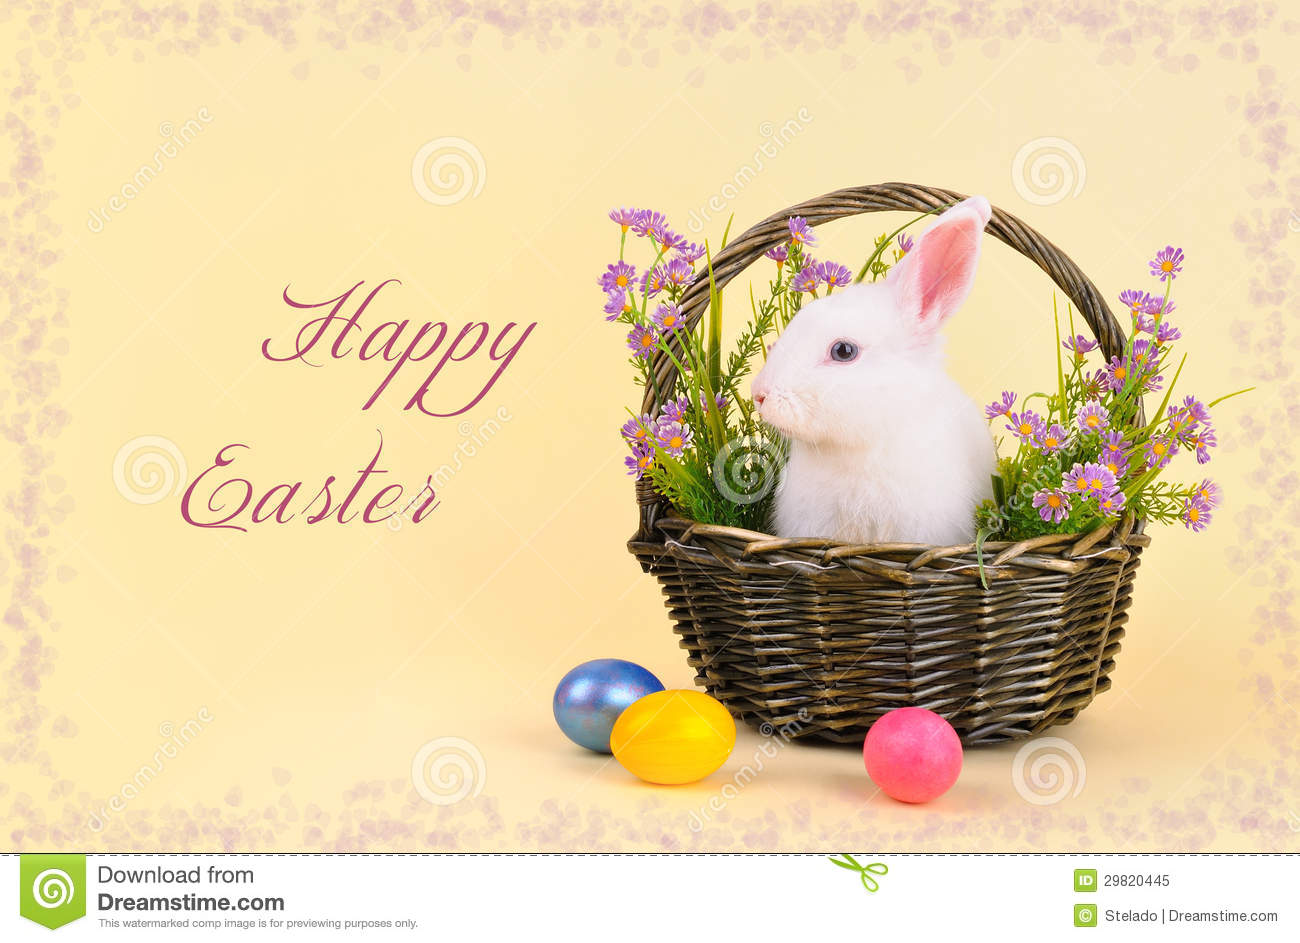 happy easter bunnies flowers-#6